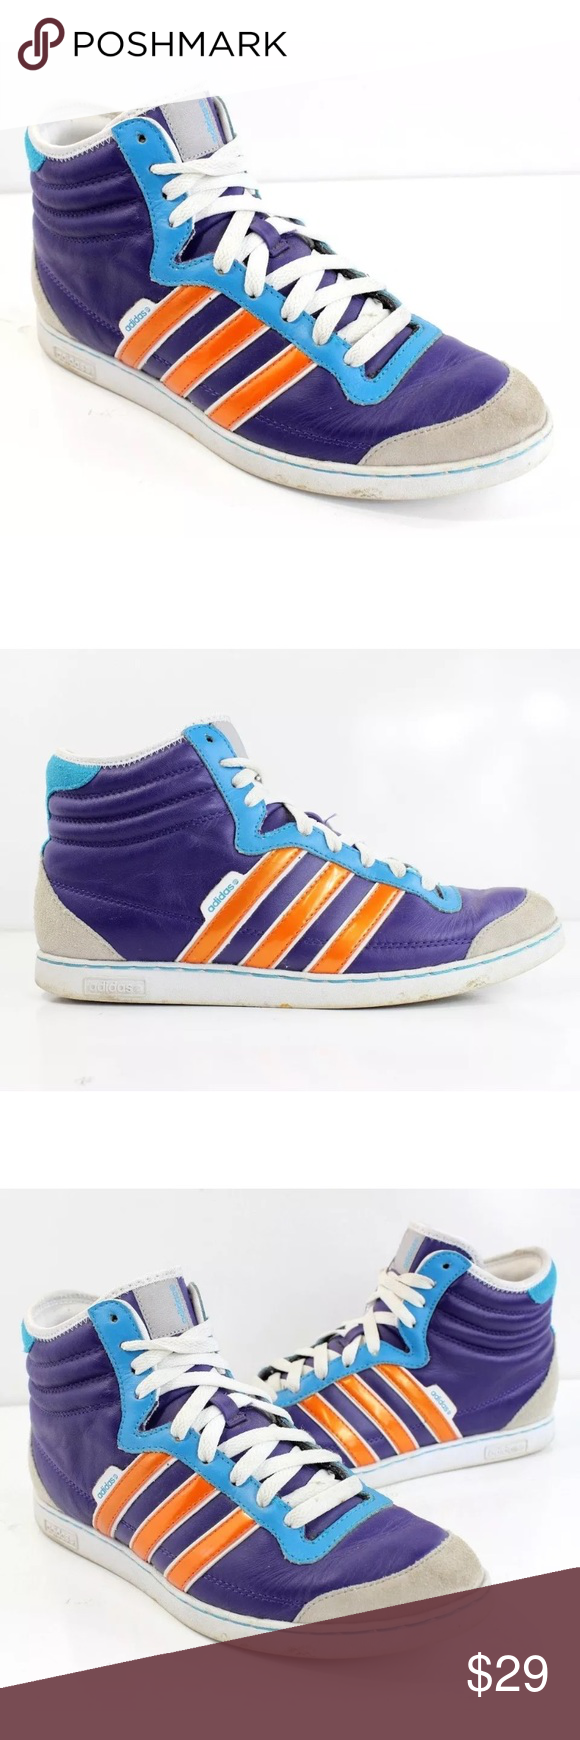 more photos 7fd71 55fe1 Mens Adidas Neo Hi Purple Orange Blue Leather Shoe Men s Adidas NEO High-Top  Shoe Great condition - free of any notable defects Soles show very minor  wear ...